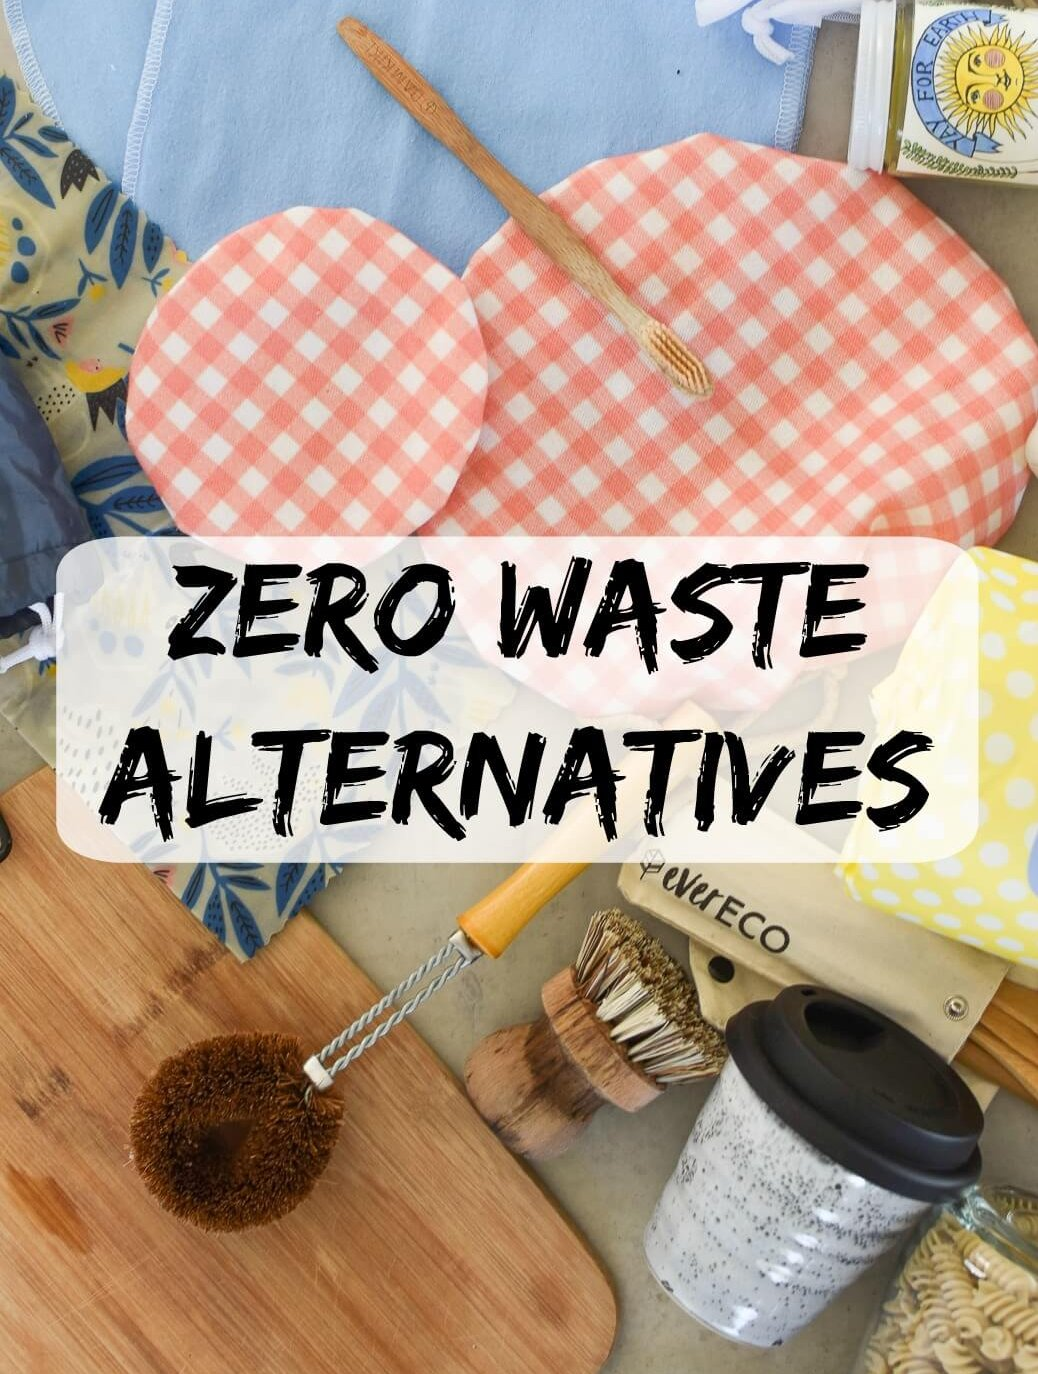 Flat lay of zero waste products with overlay - Zero waste alternatives